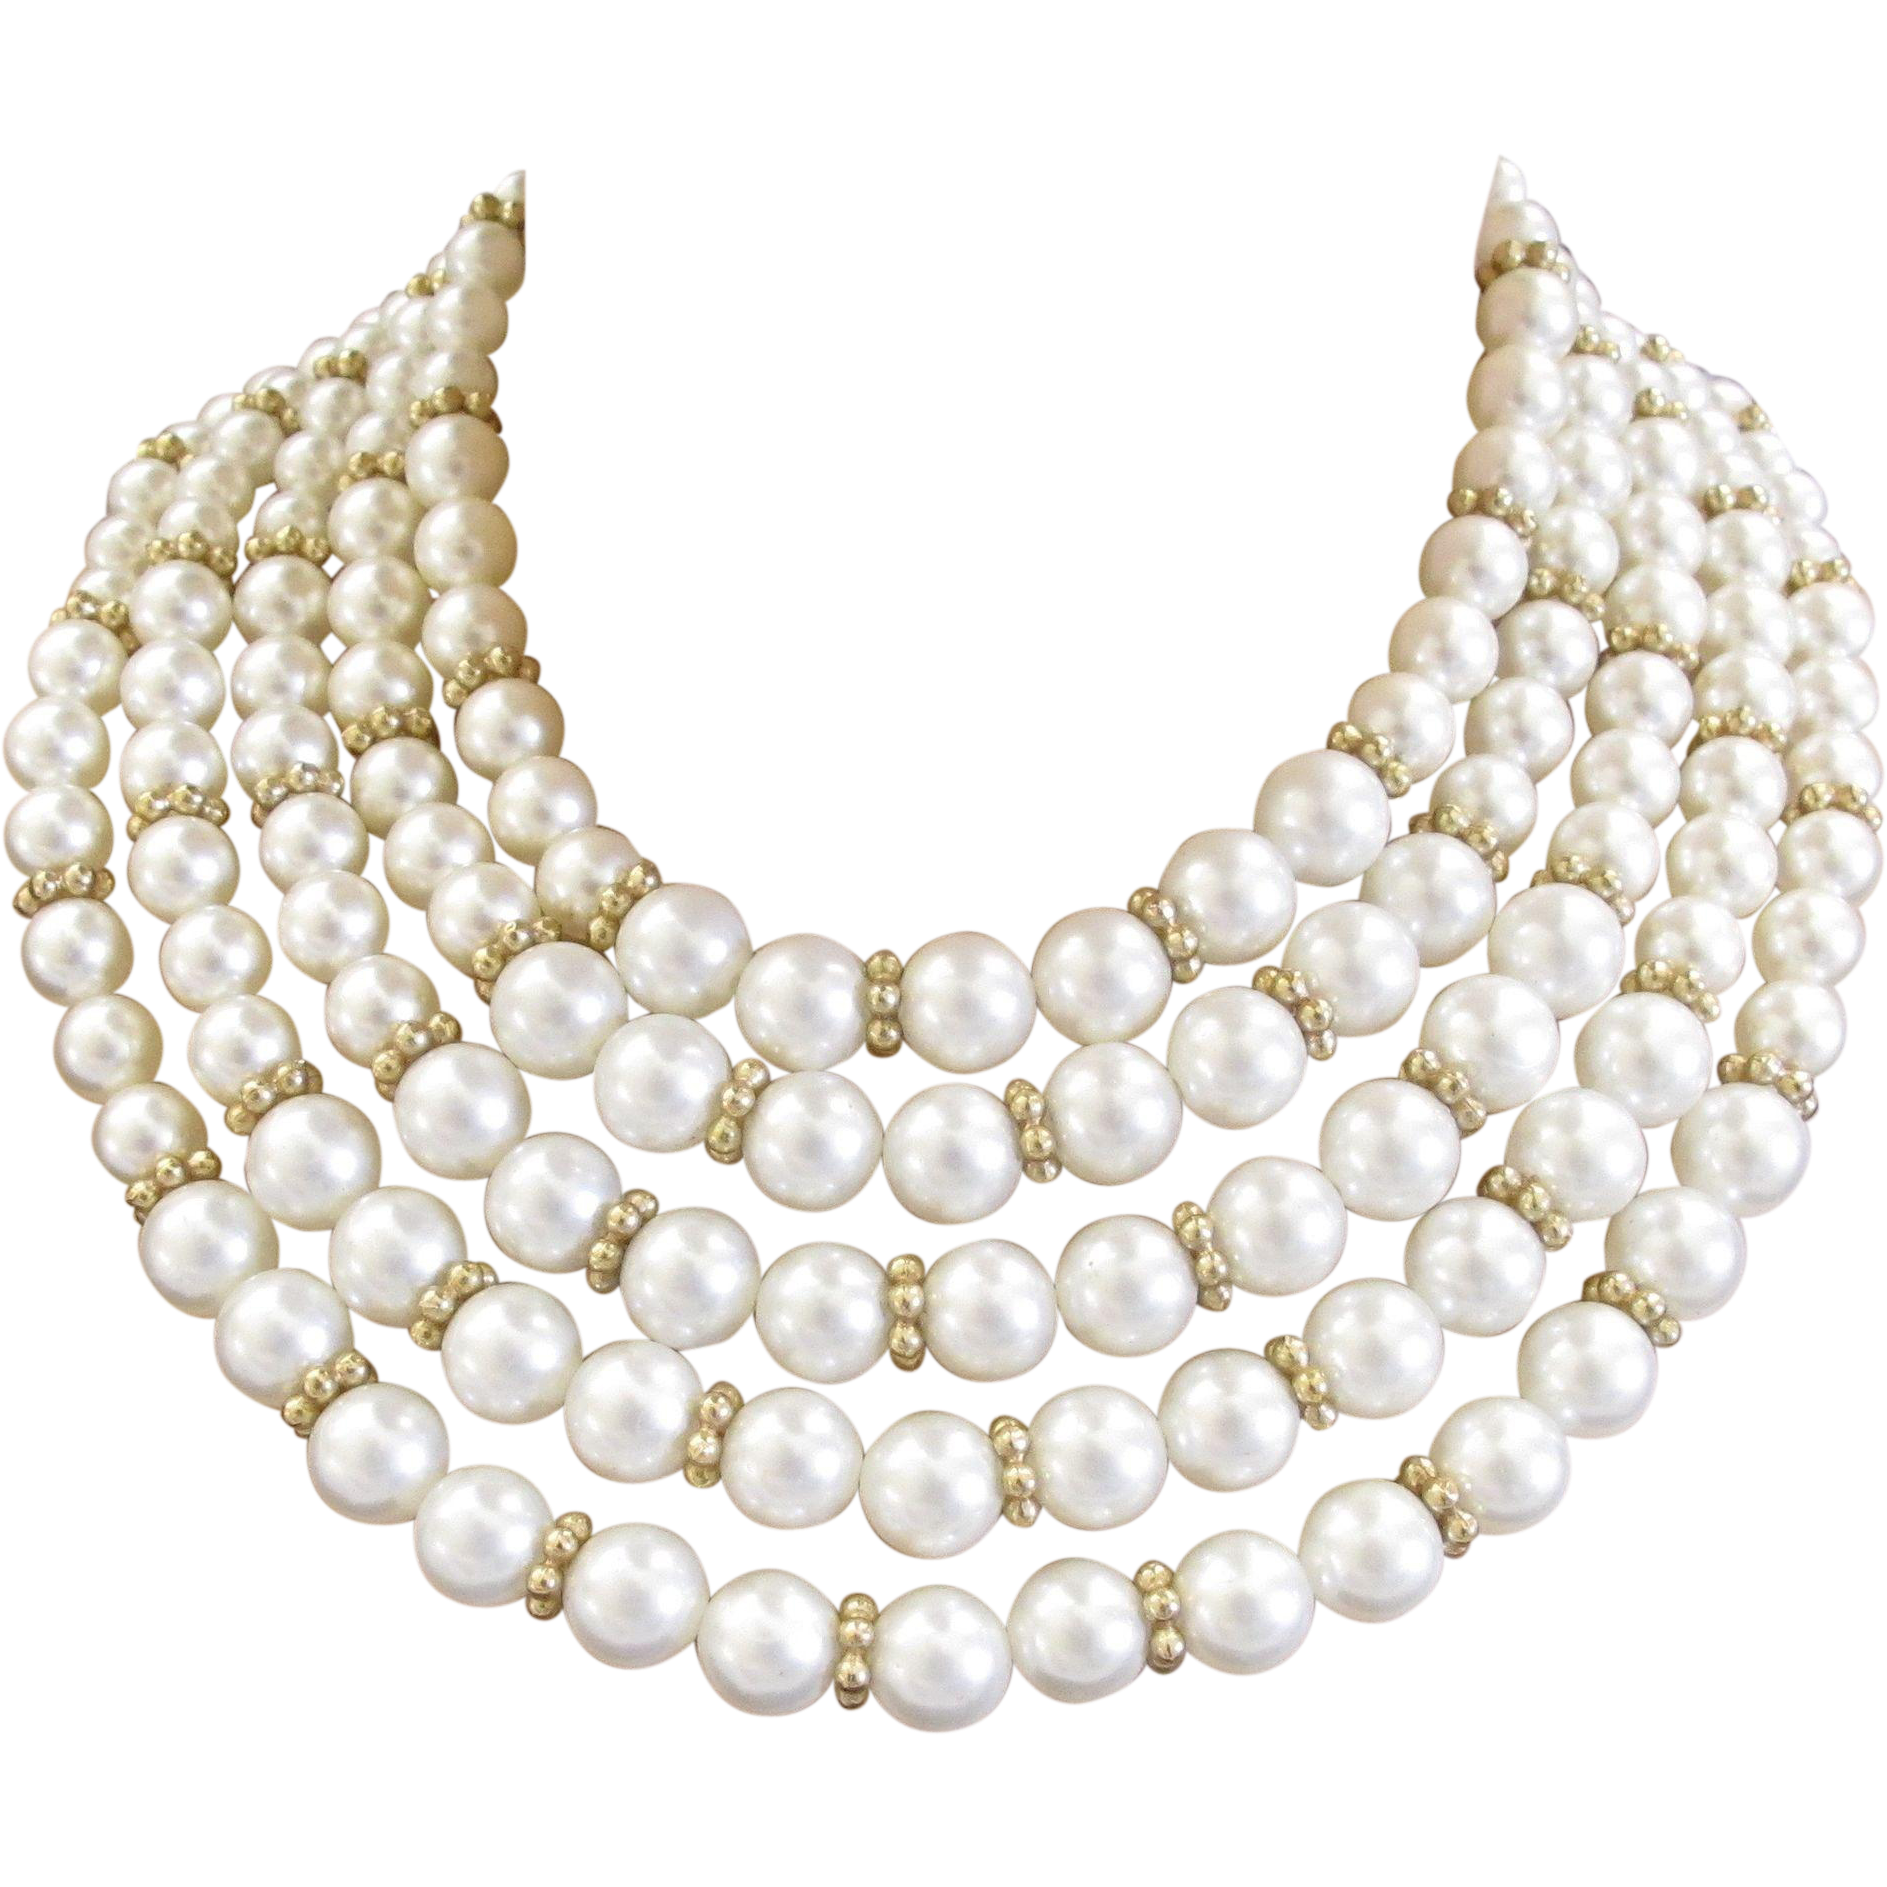 earrings imitation set india rhinestone fashion ornament the crystal products faux style pearl necklace diva jewellery